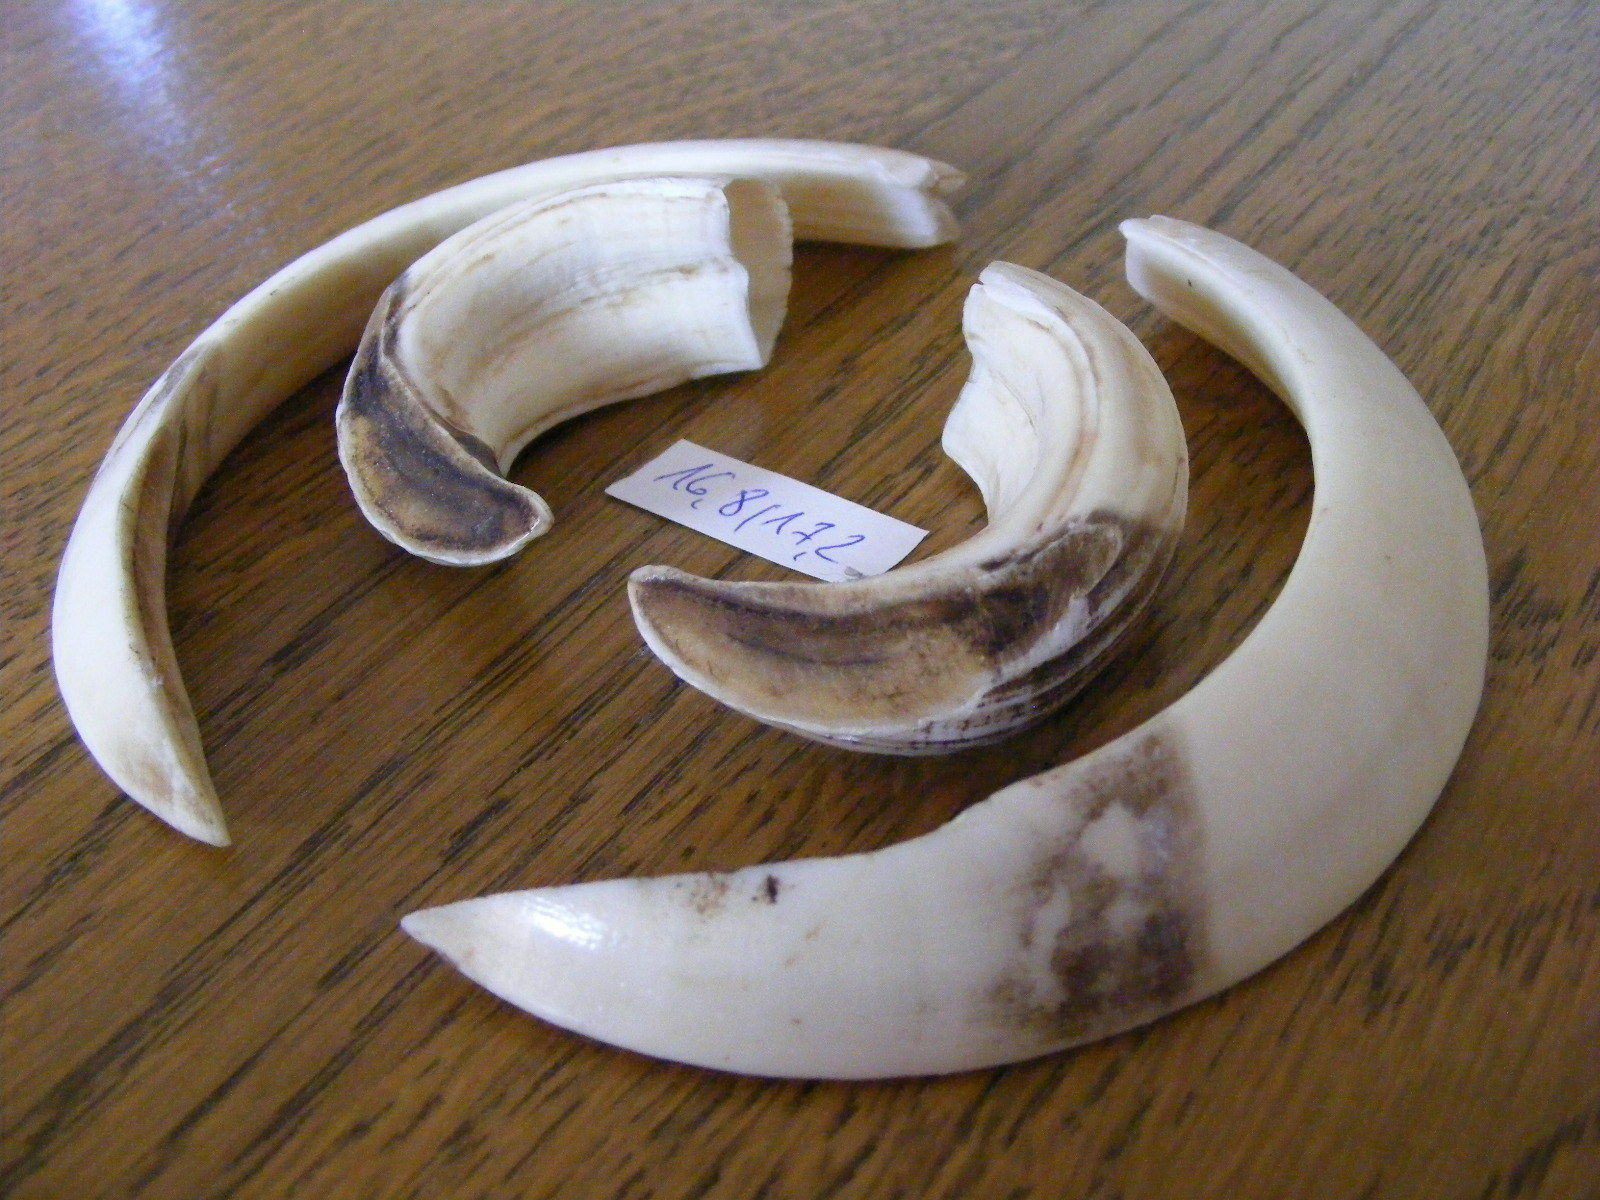 WILD (Sus BOAR TROPHY (Sus WILD Scrofa) Tusks, Teeth, hog, hunting, taxidermy, skull, 5fe395